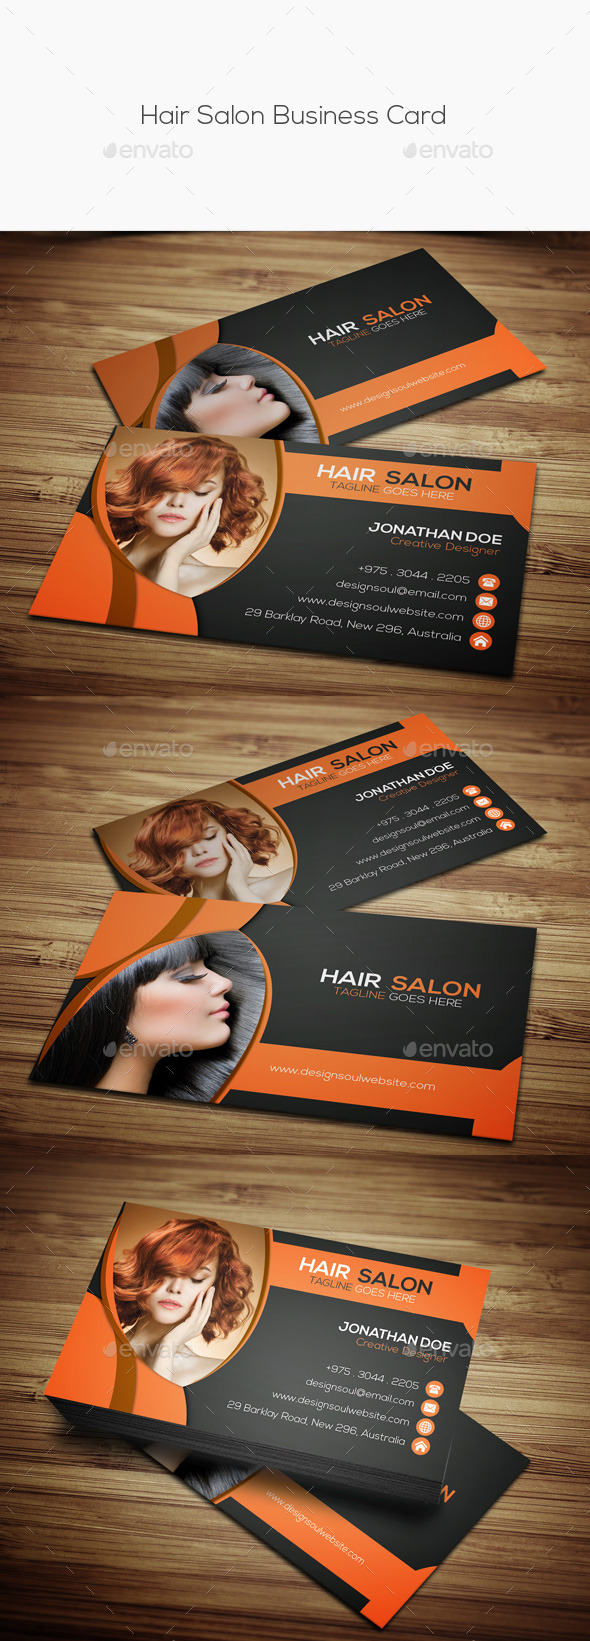 Hair Salon Business Card Templates By Designsoul GraphicRiver - Hair salon business card template